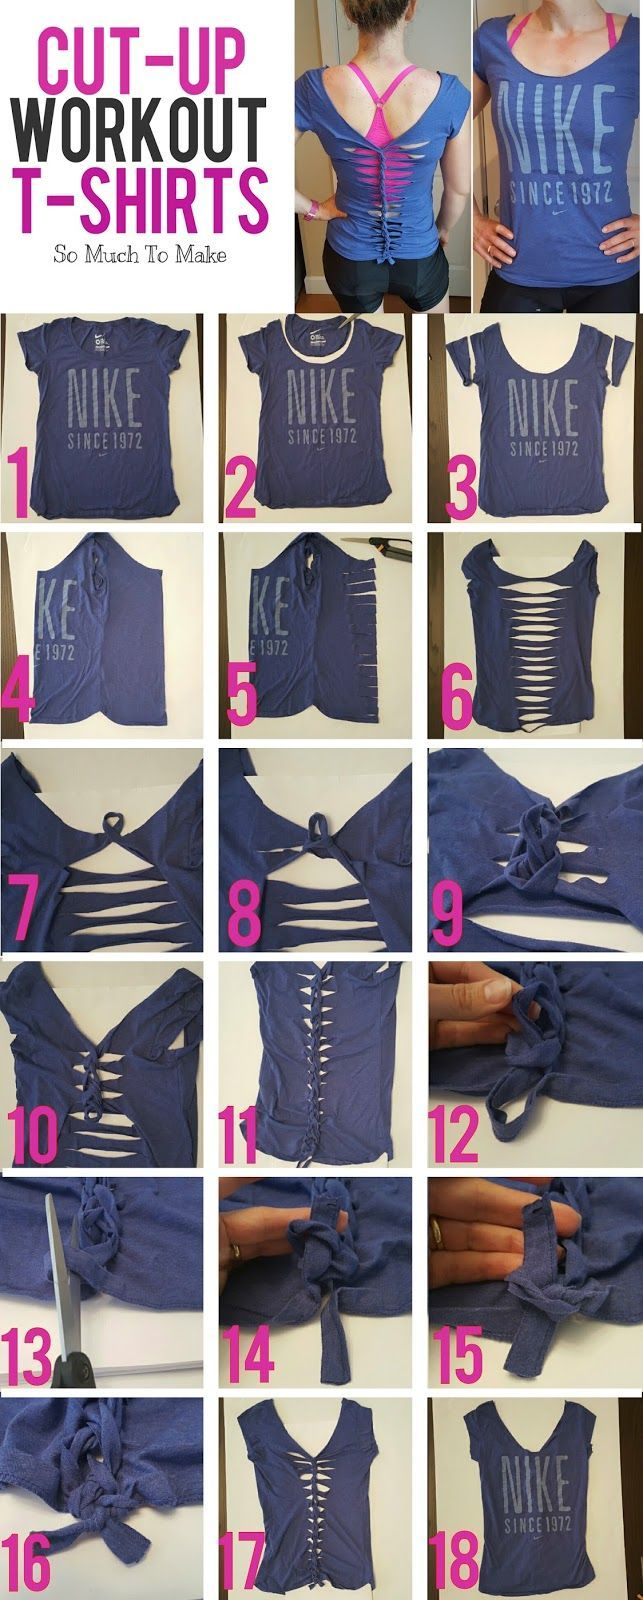 Cut Up Workout T Shirt Tutorial So Much To Make Diy Repurposed Woven No Sew Fashion Diyshirtscutting